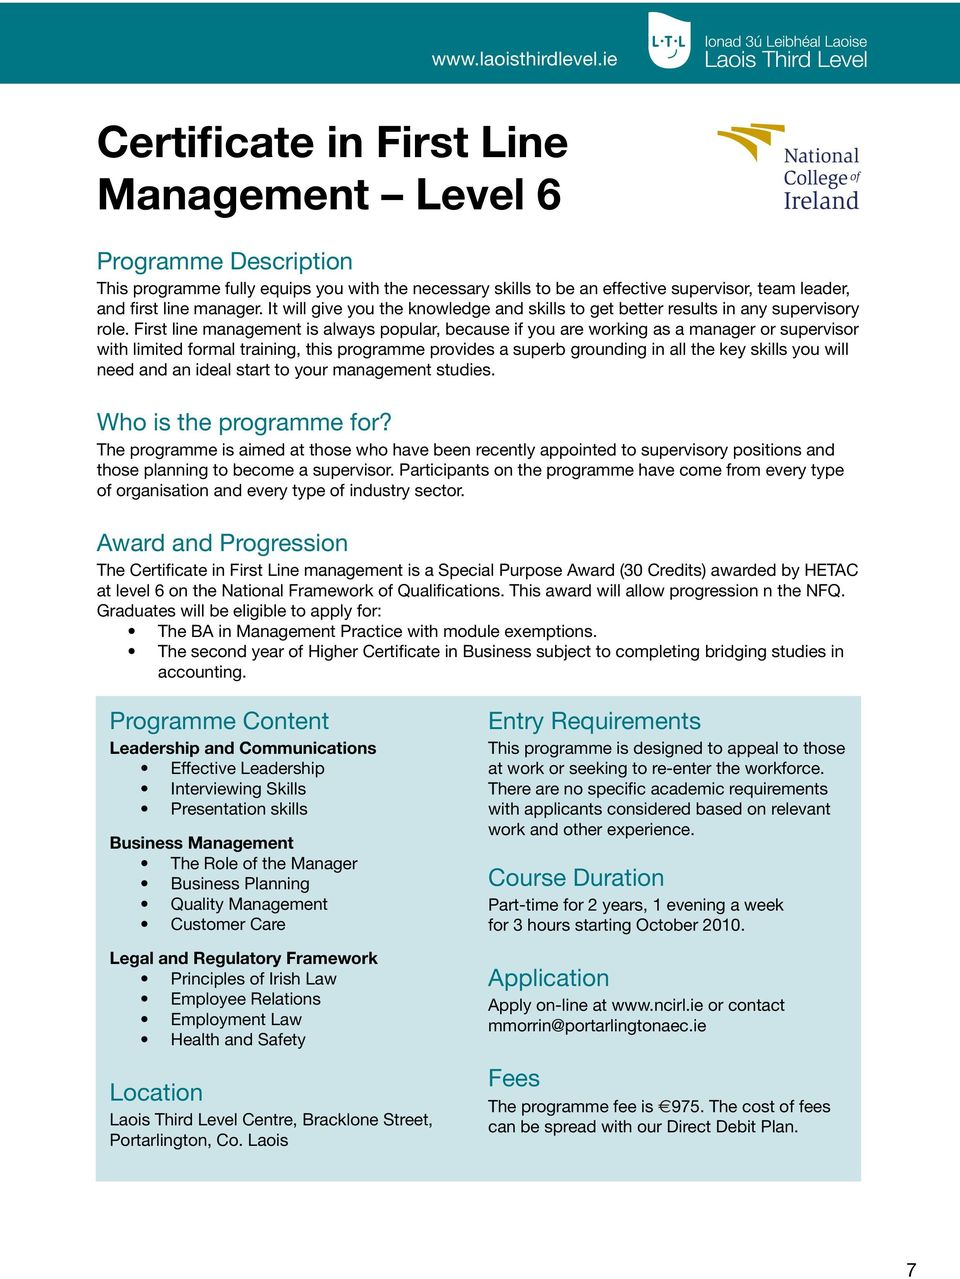 First line management is always popular, because if you are working as a manager or supervisor with limited formal training, this programme provides a superb grounding in all the key skills you will